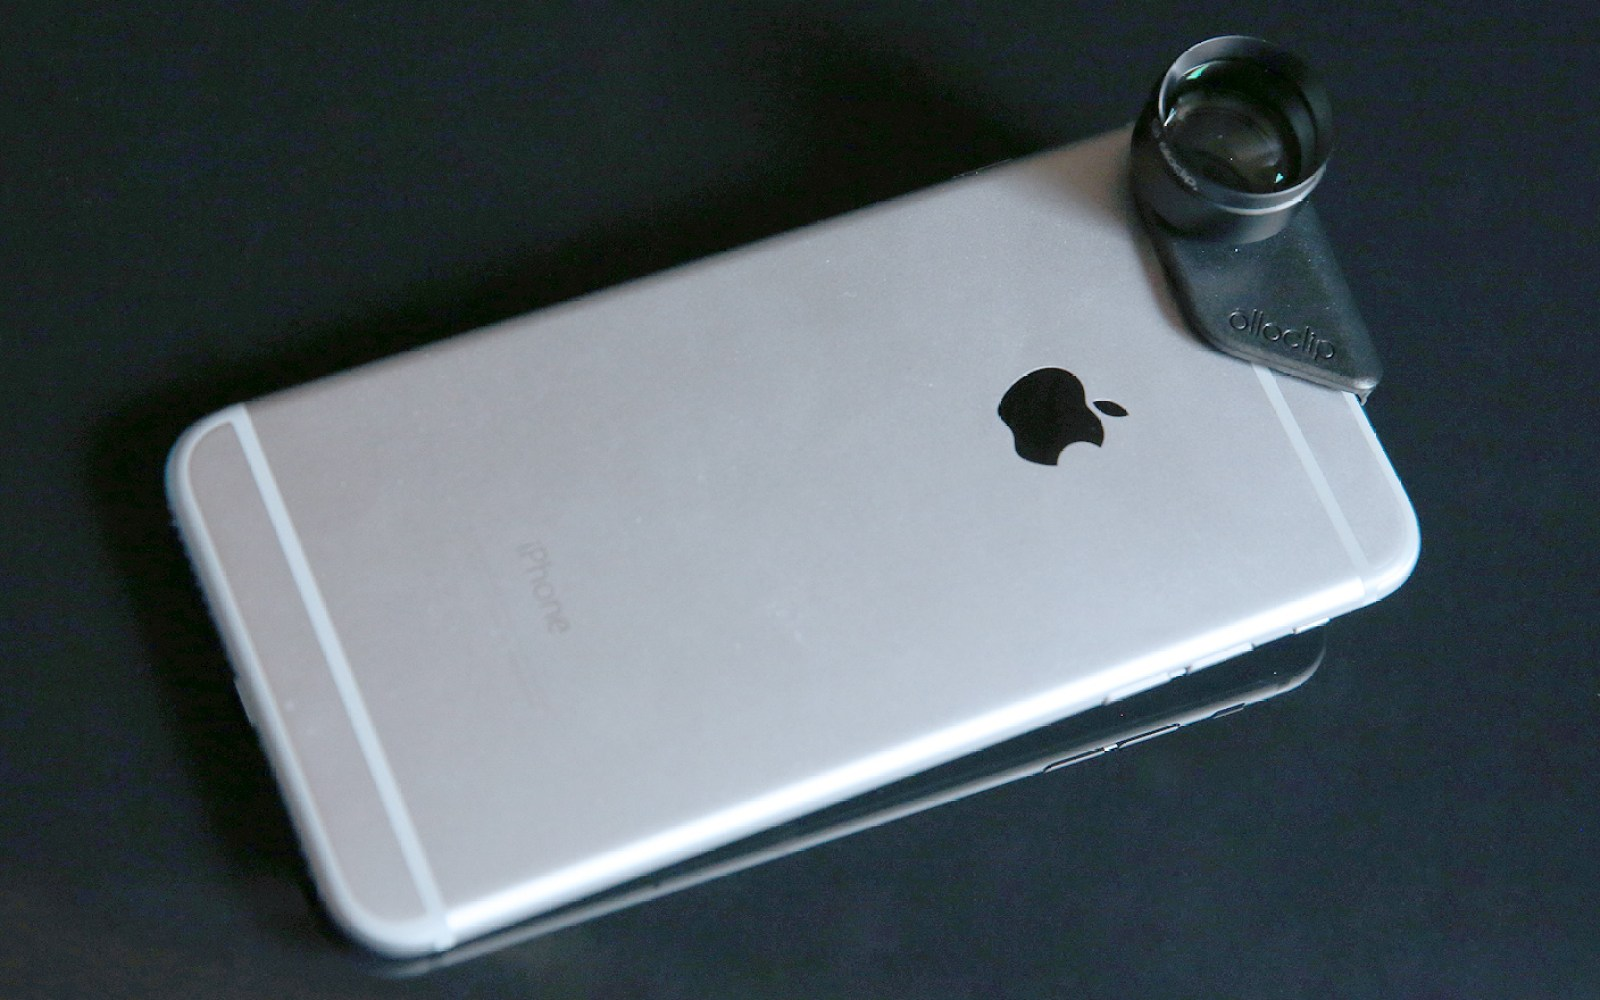 Review: Olloclip's Telephoto and Circular Polarizing Lens lets iPhone 6, 6 Plus users shoot 2X-magnified photos through glass